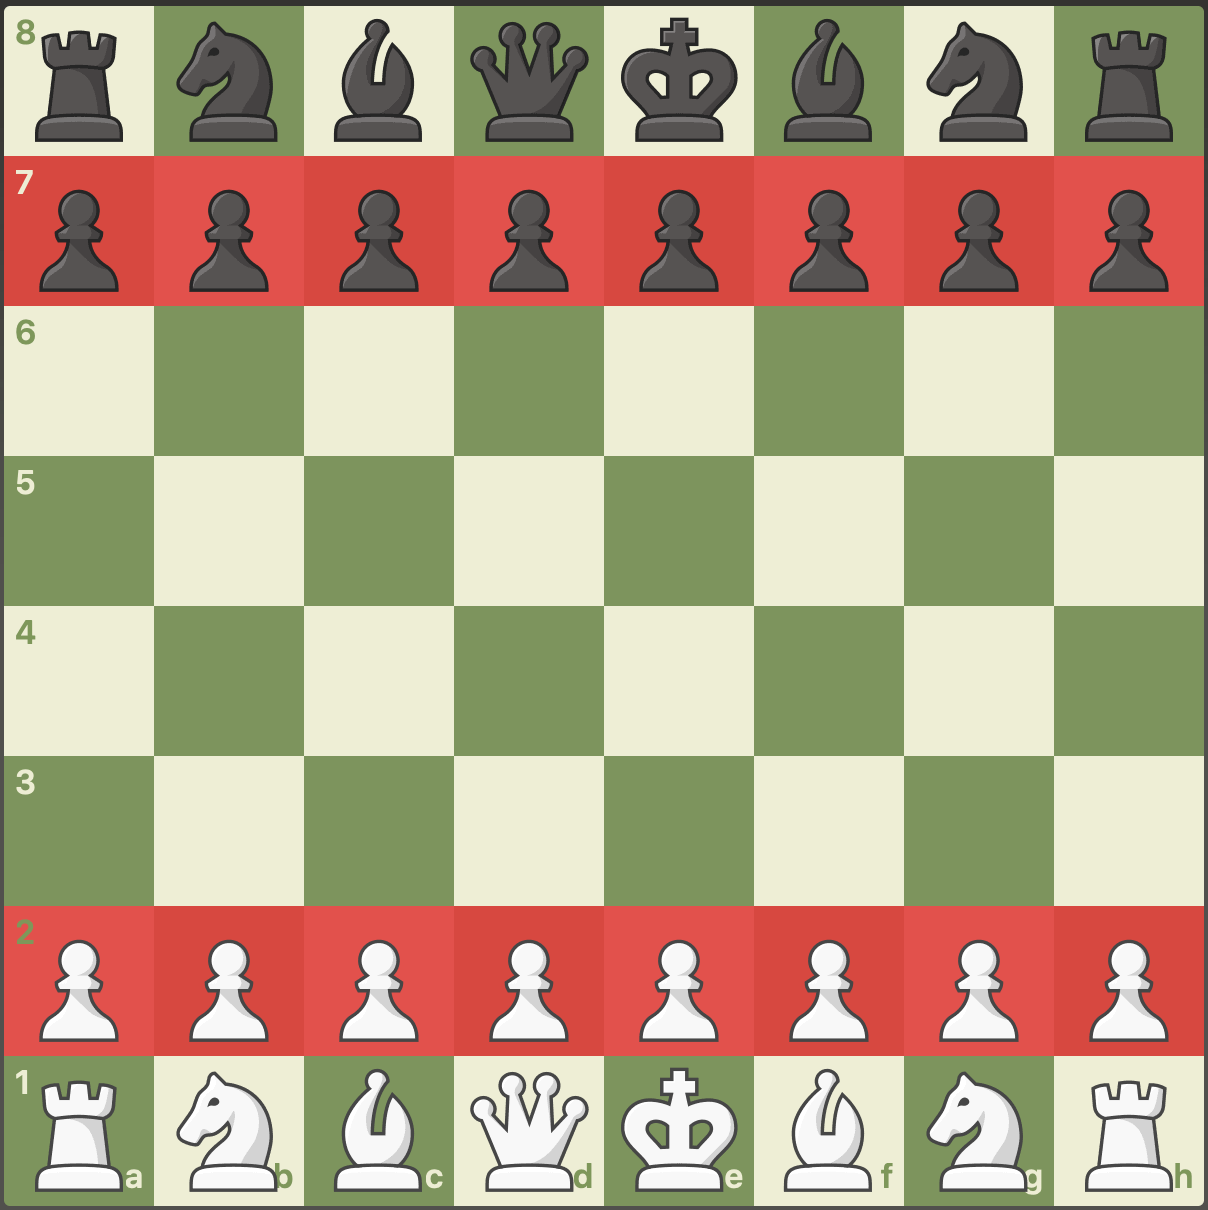 pawn starting position